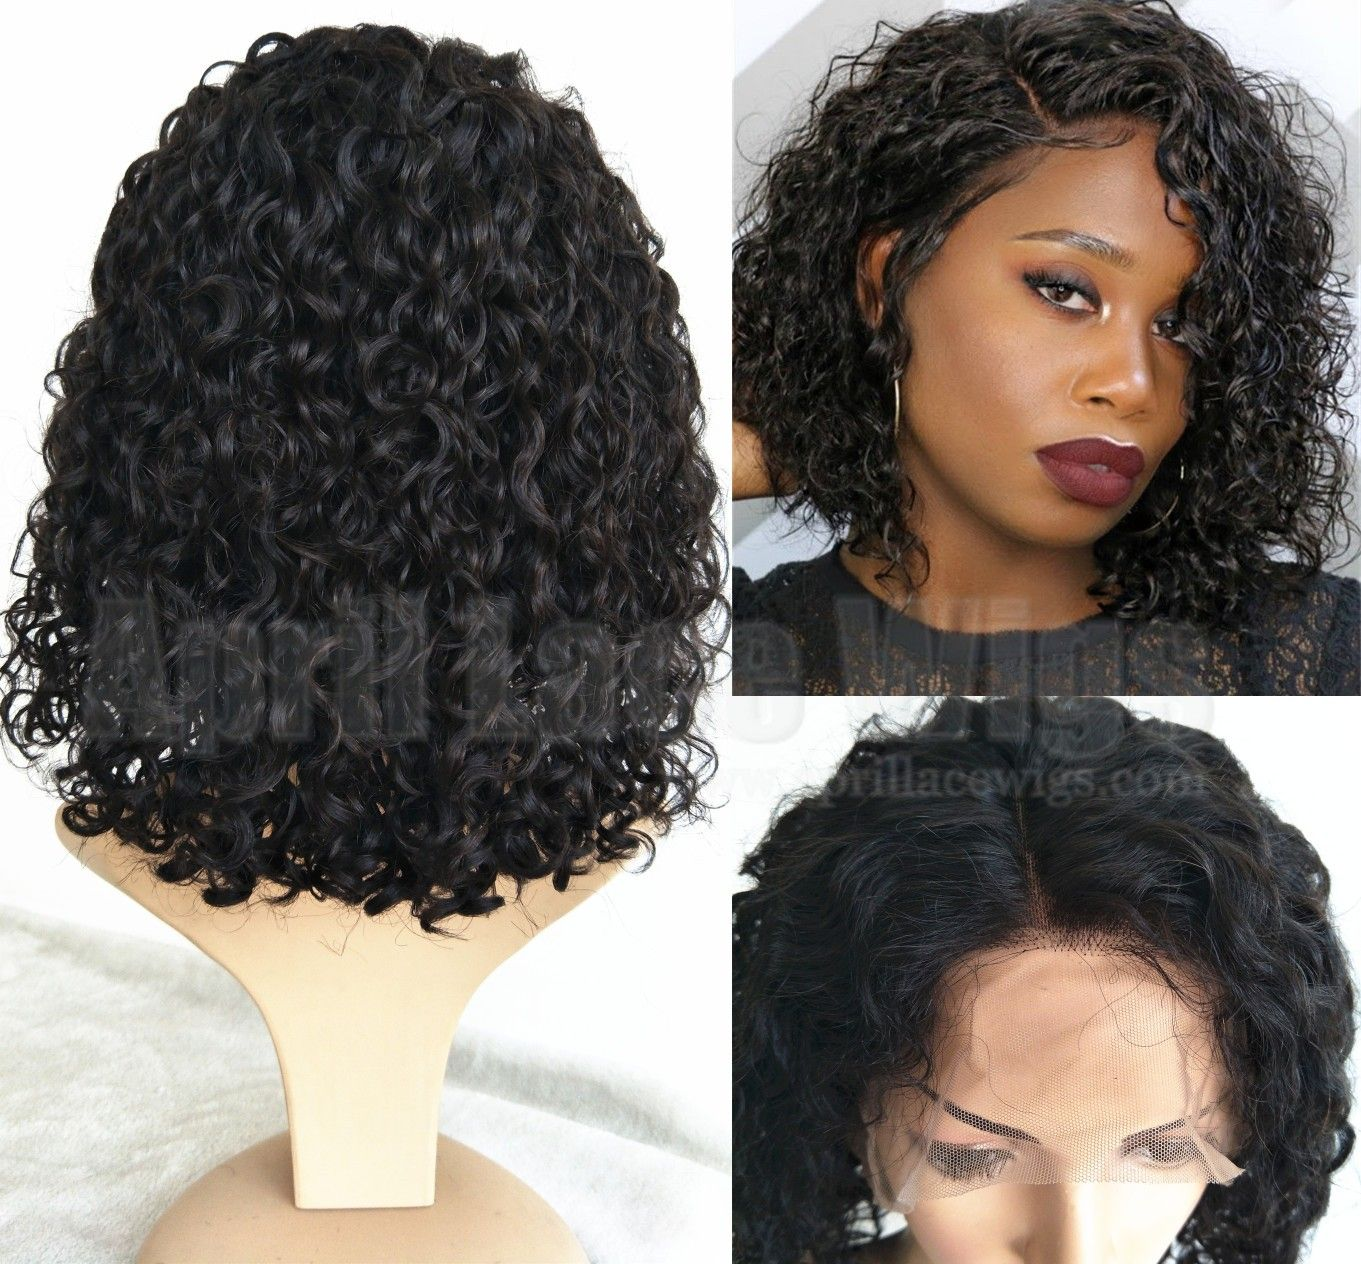 Curly Bob Lace Wig Hair Color For Black Hair Long Hair Color